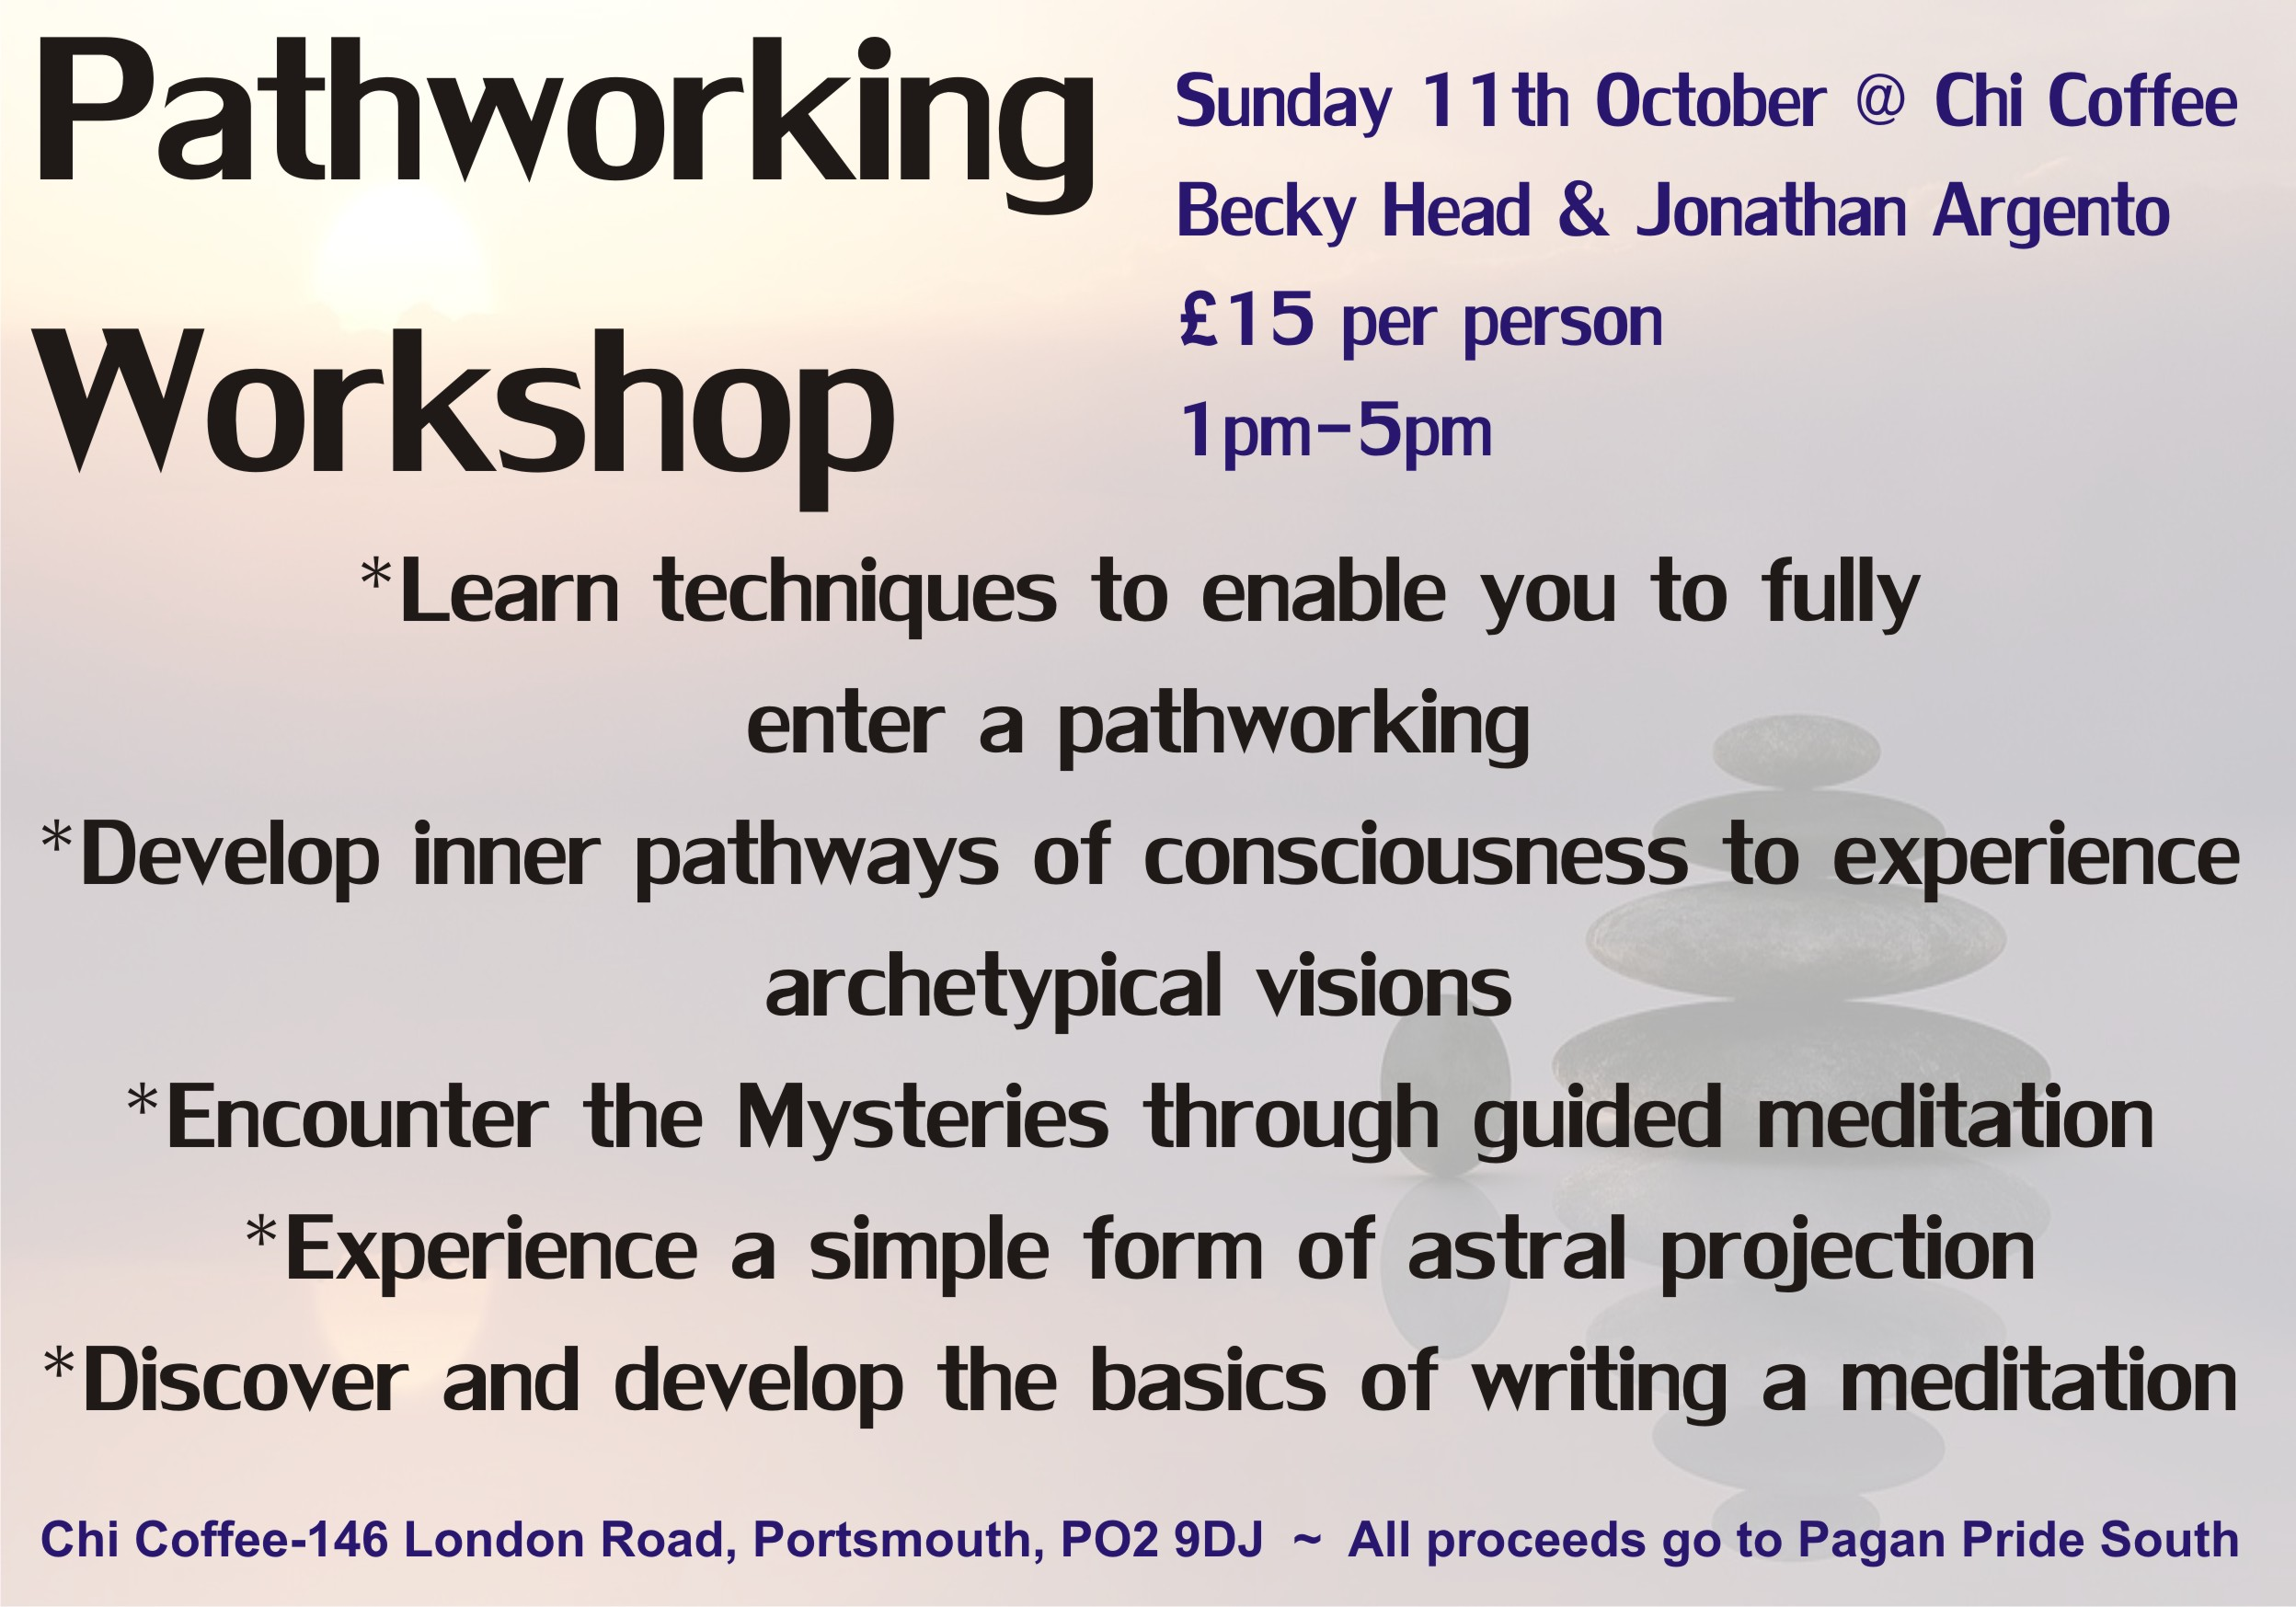 Pathworking Workshop